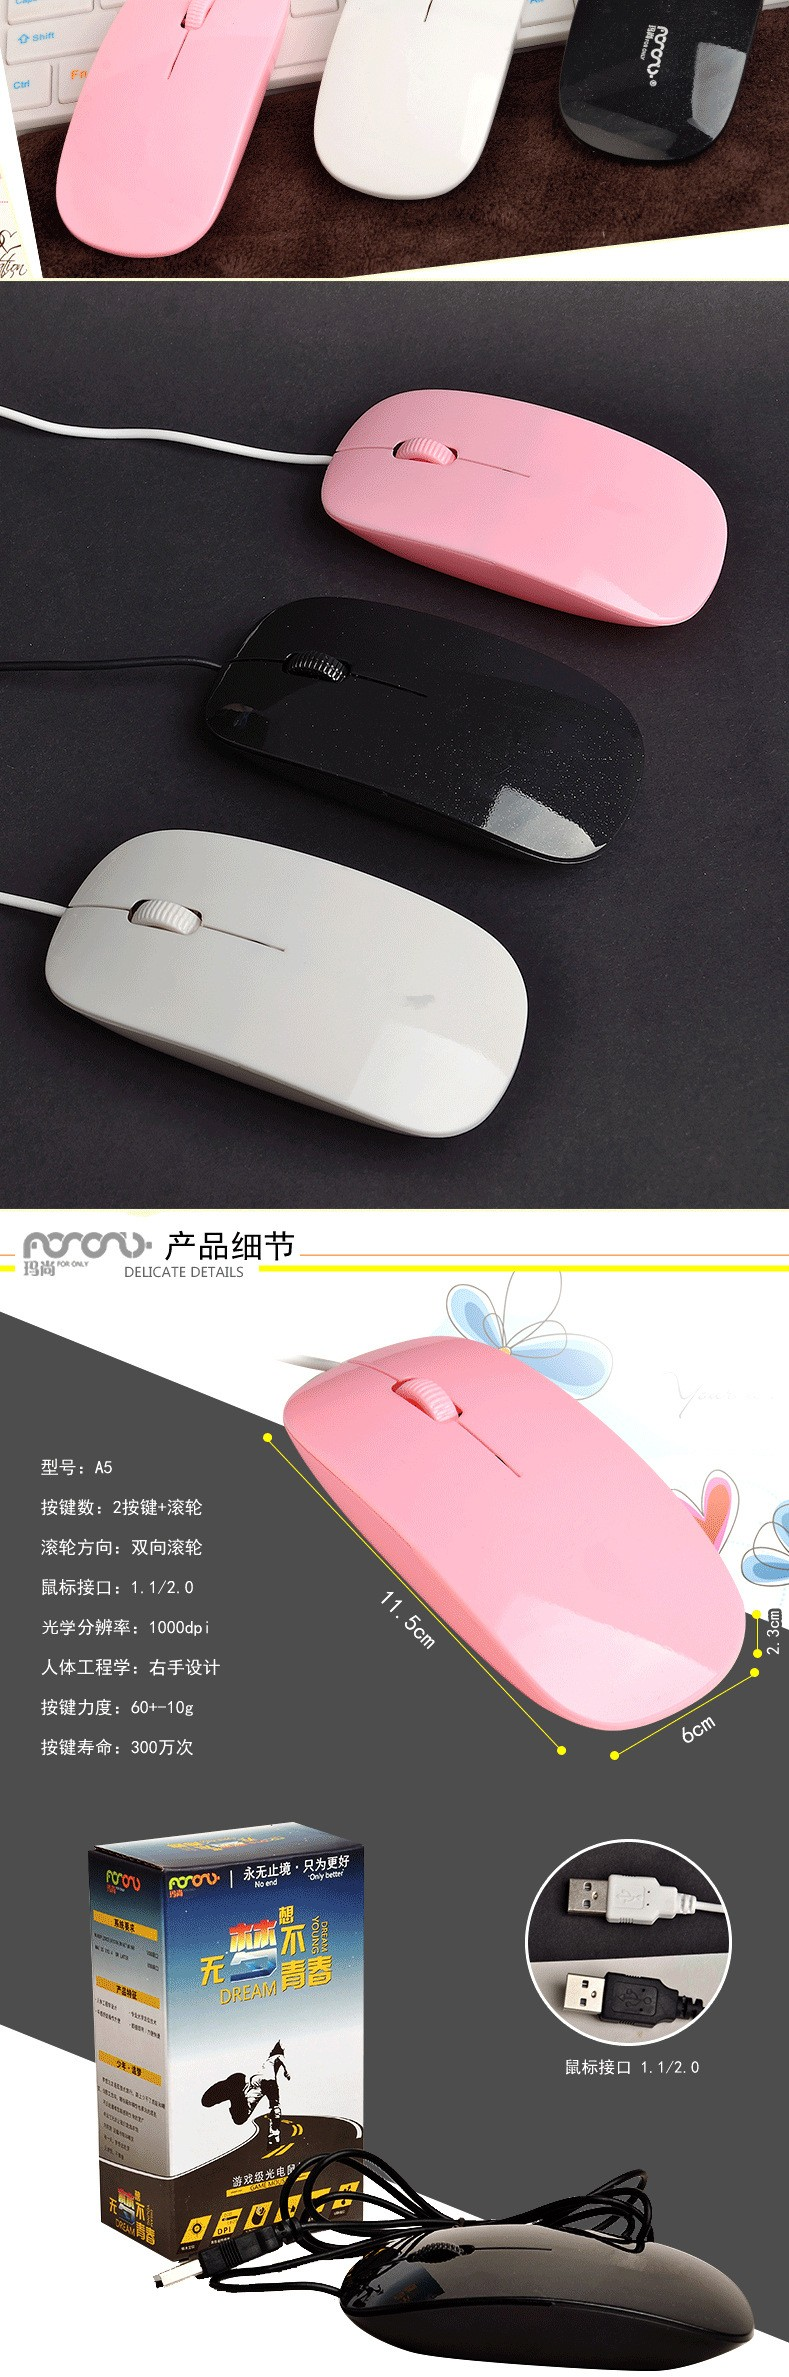 thin mouse (1)